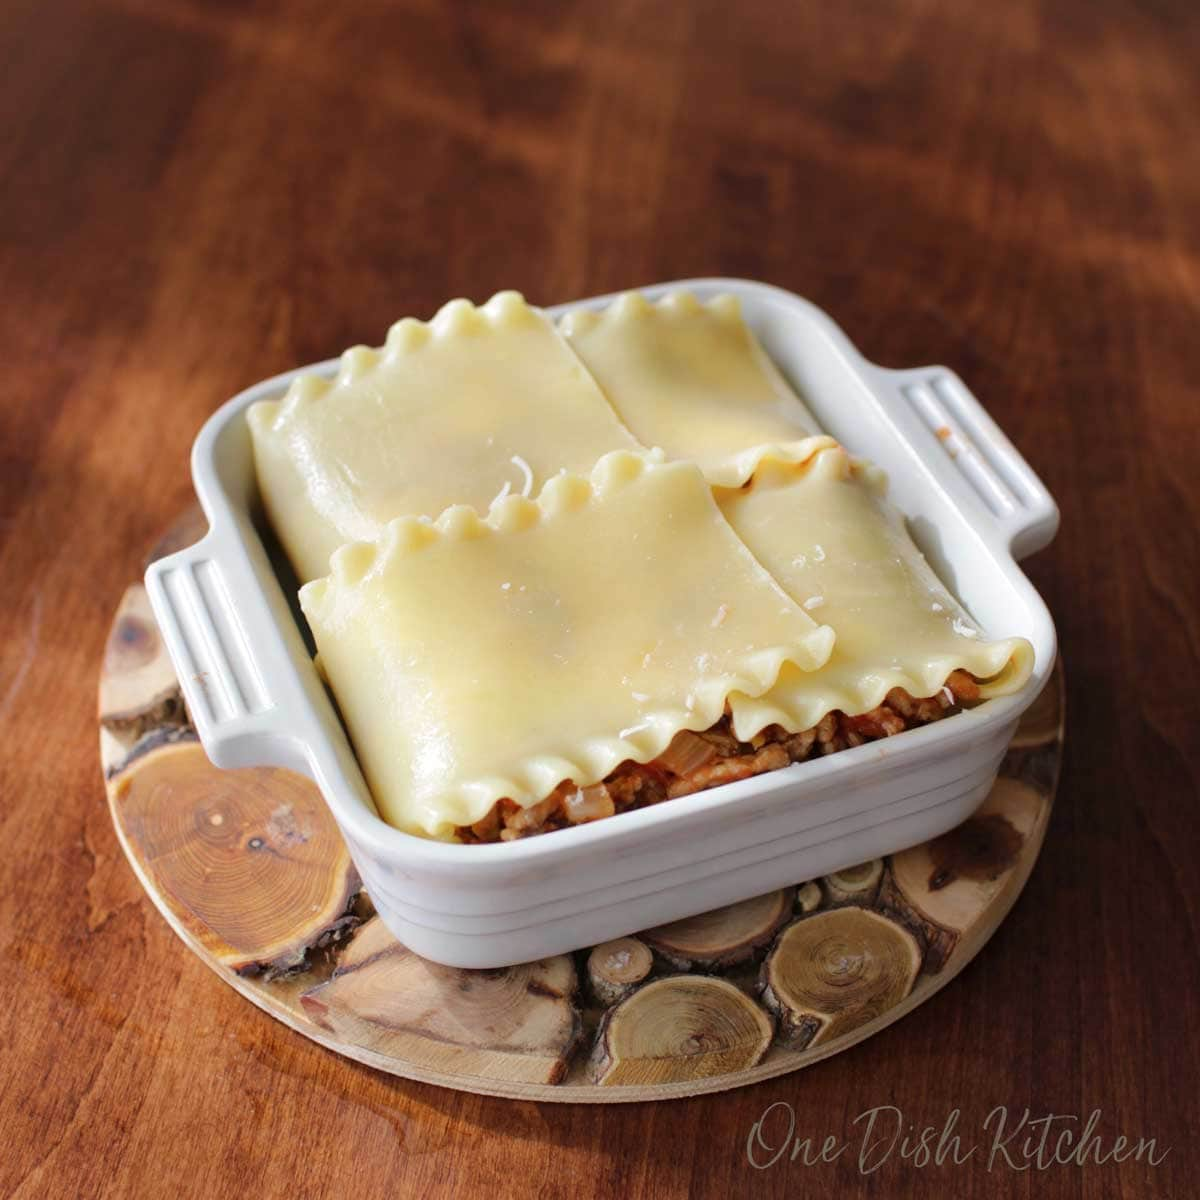 Mini lasagna with noodles folded over the mixture